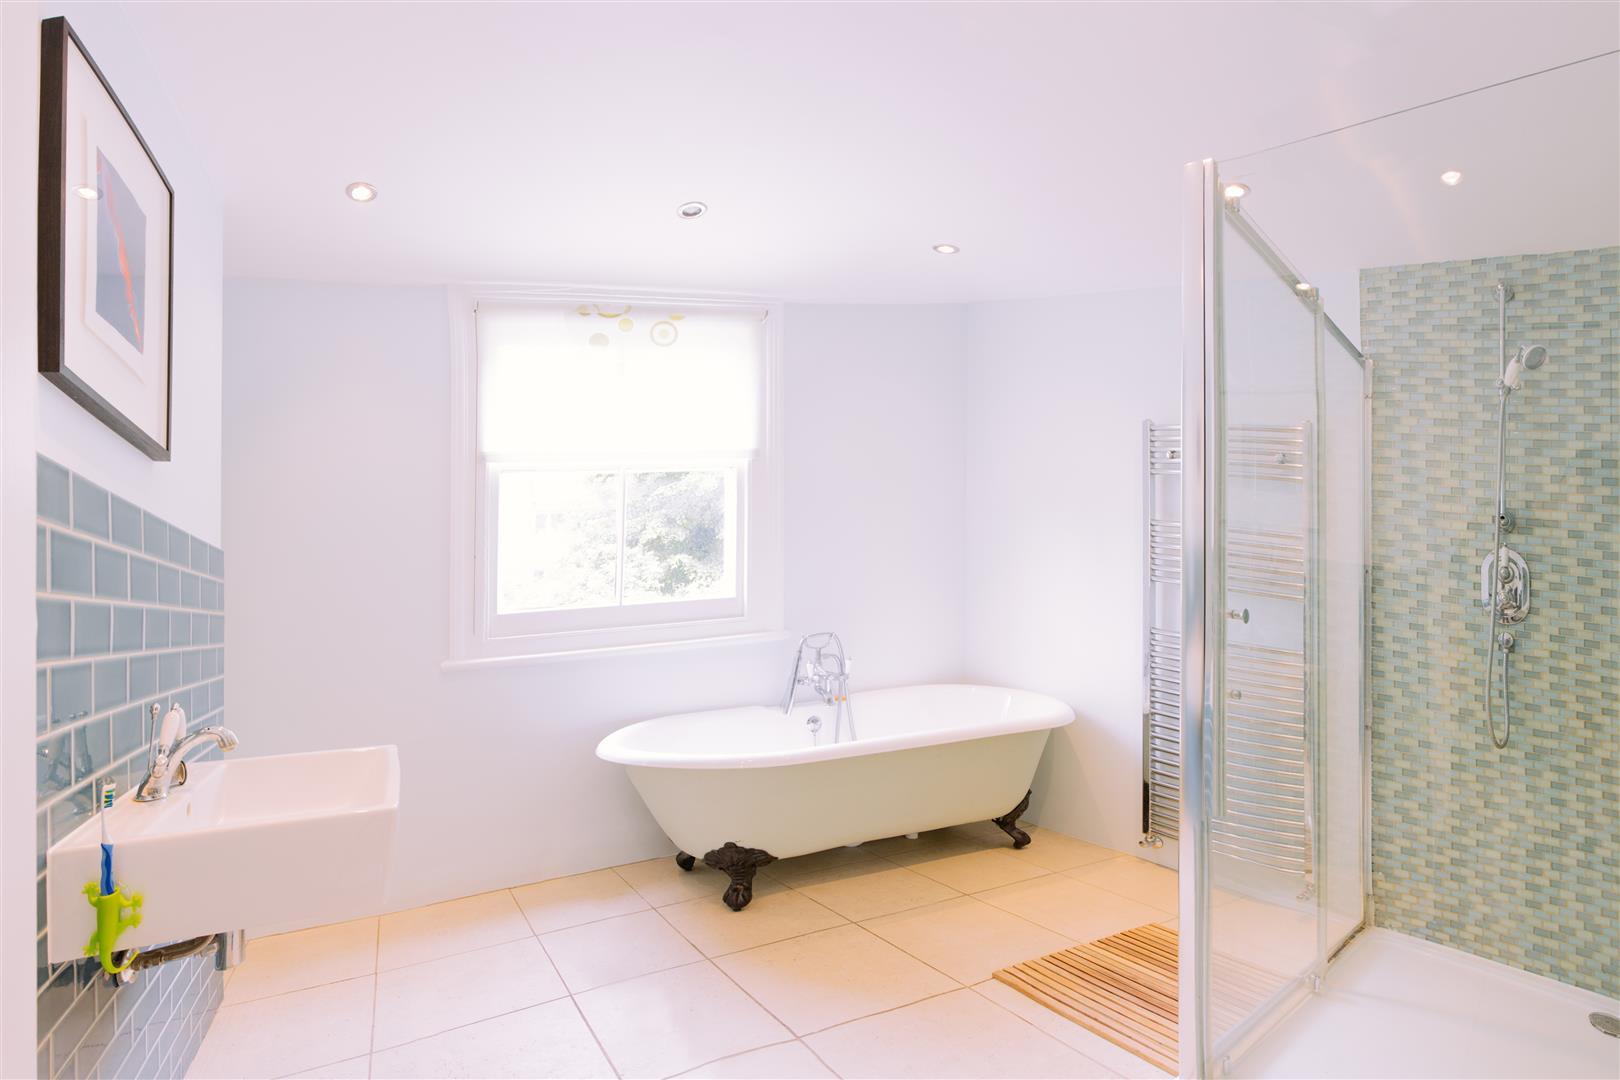 A picture of a large bright bathroom with a free standing bath, separate cubical shower and beautiful cream floor tiles.